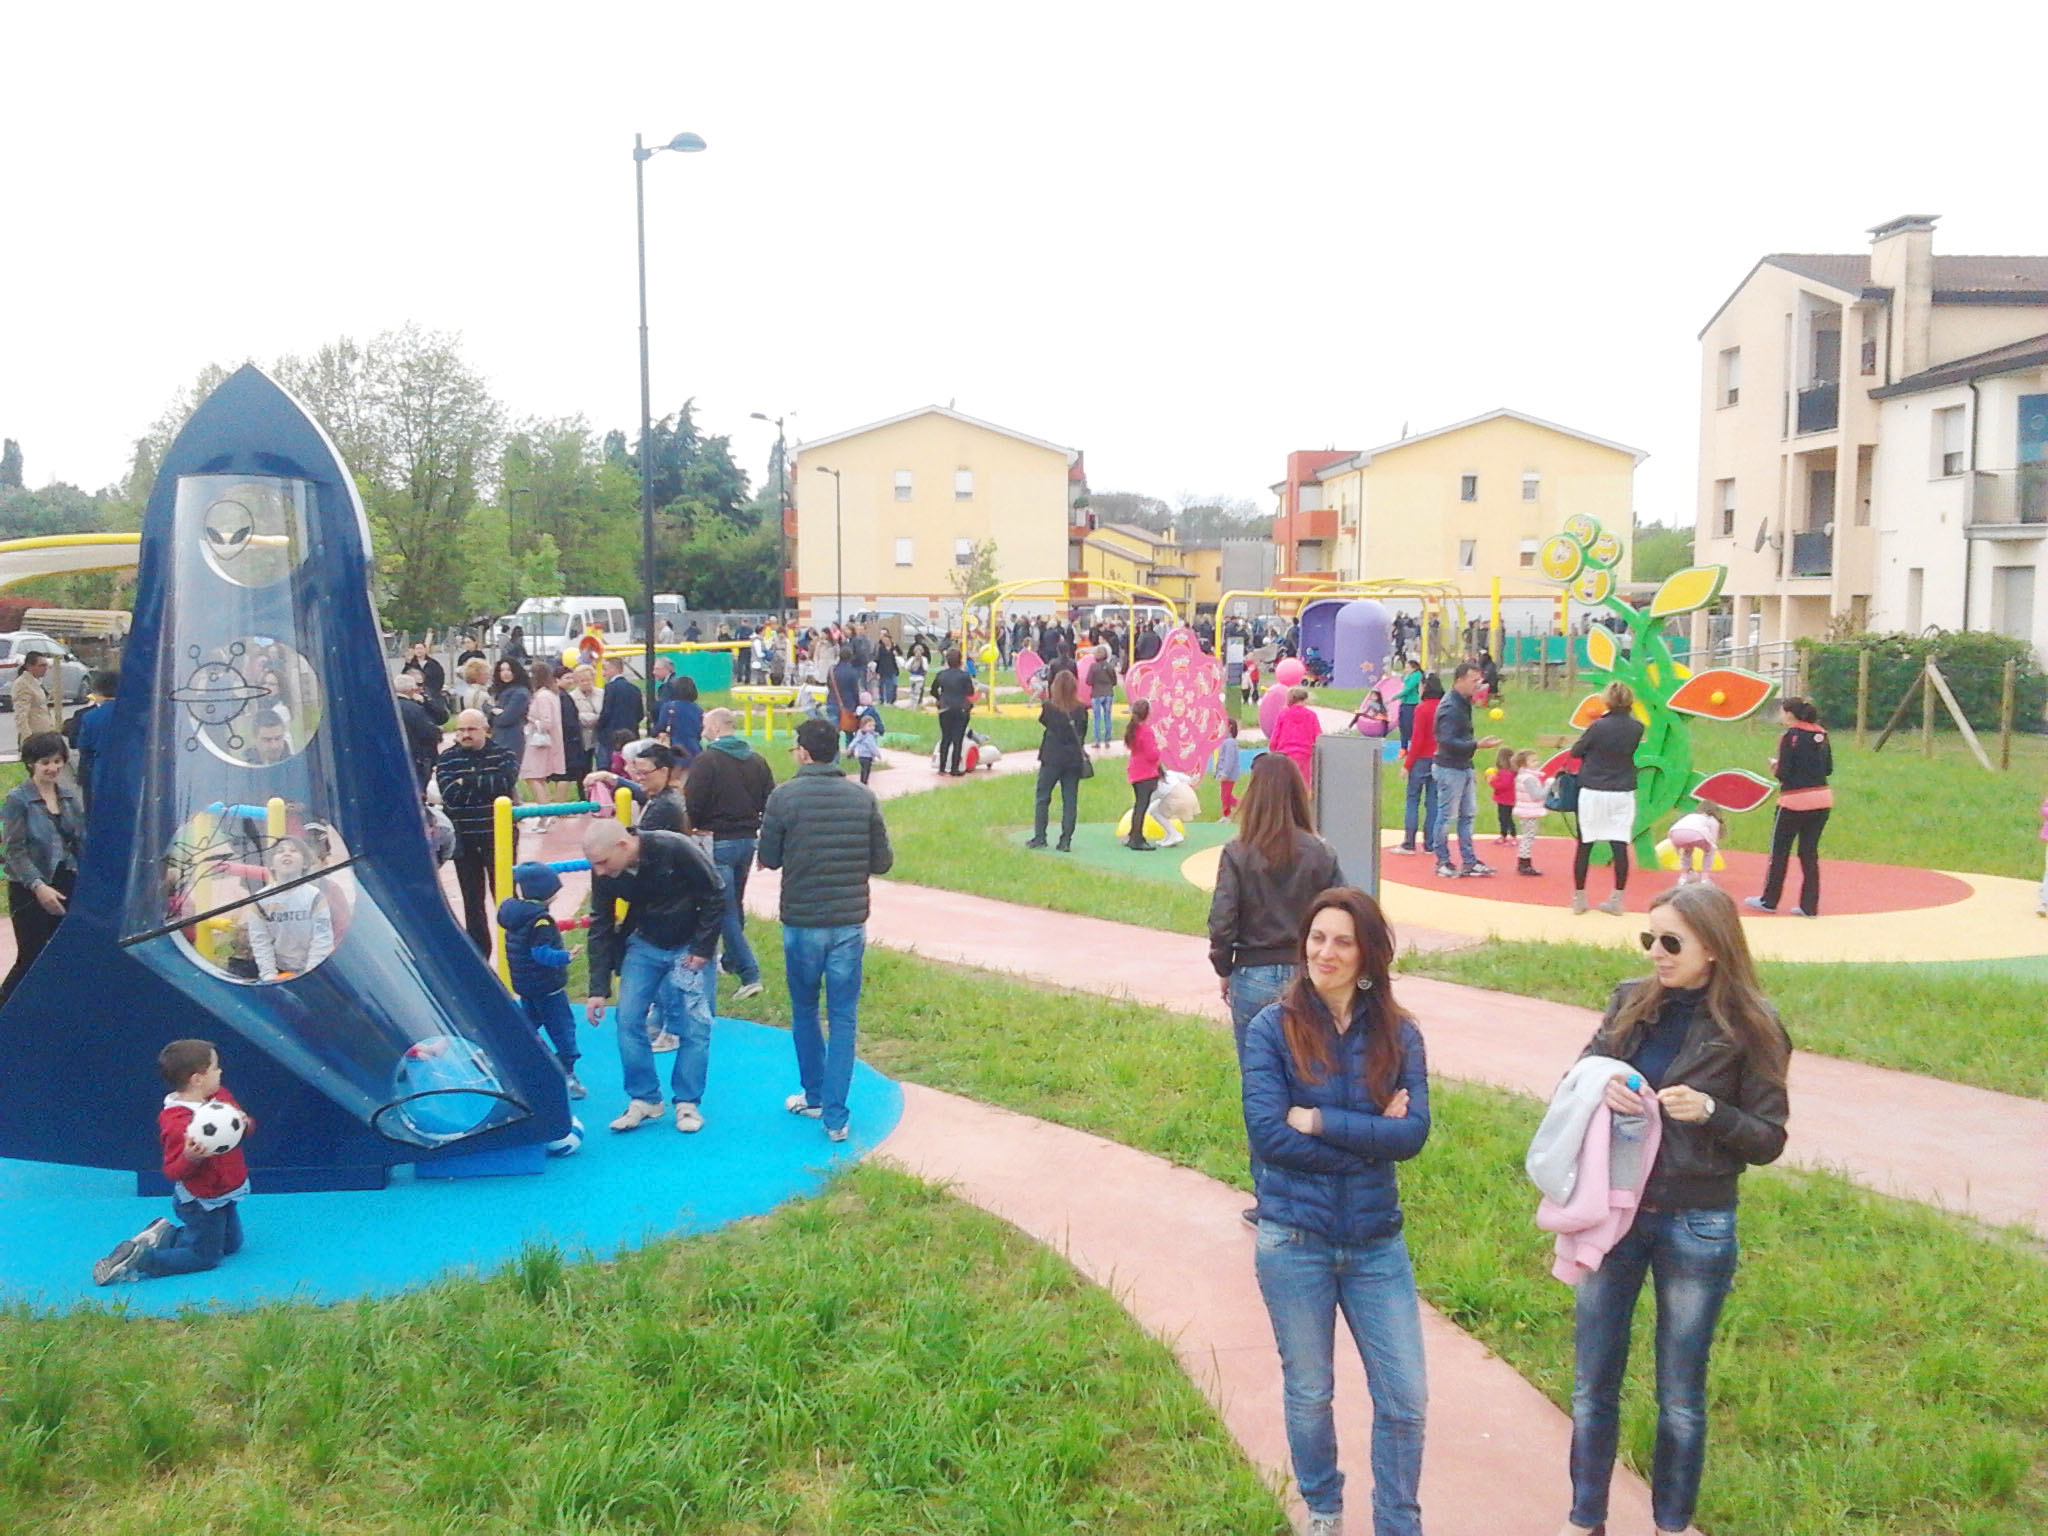 PARCHI INCLUSIVI: Waterproofing e Inclusive Play Solutions